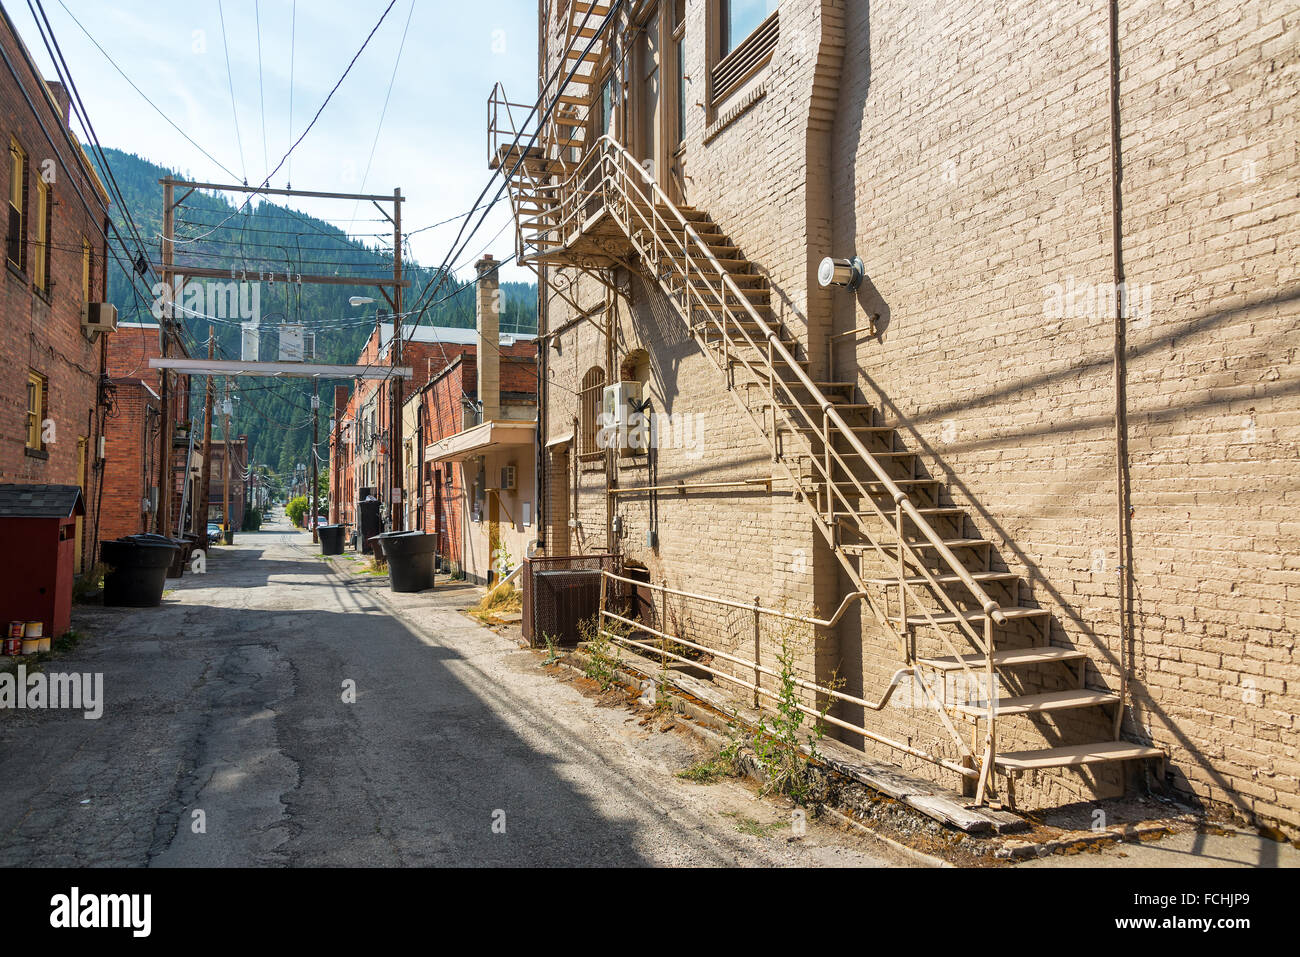 Narrow alley in the historic mining town of Wallace, Idaho - Stock Image